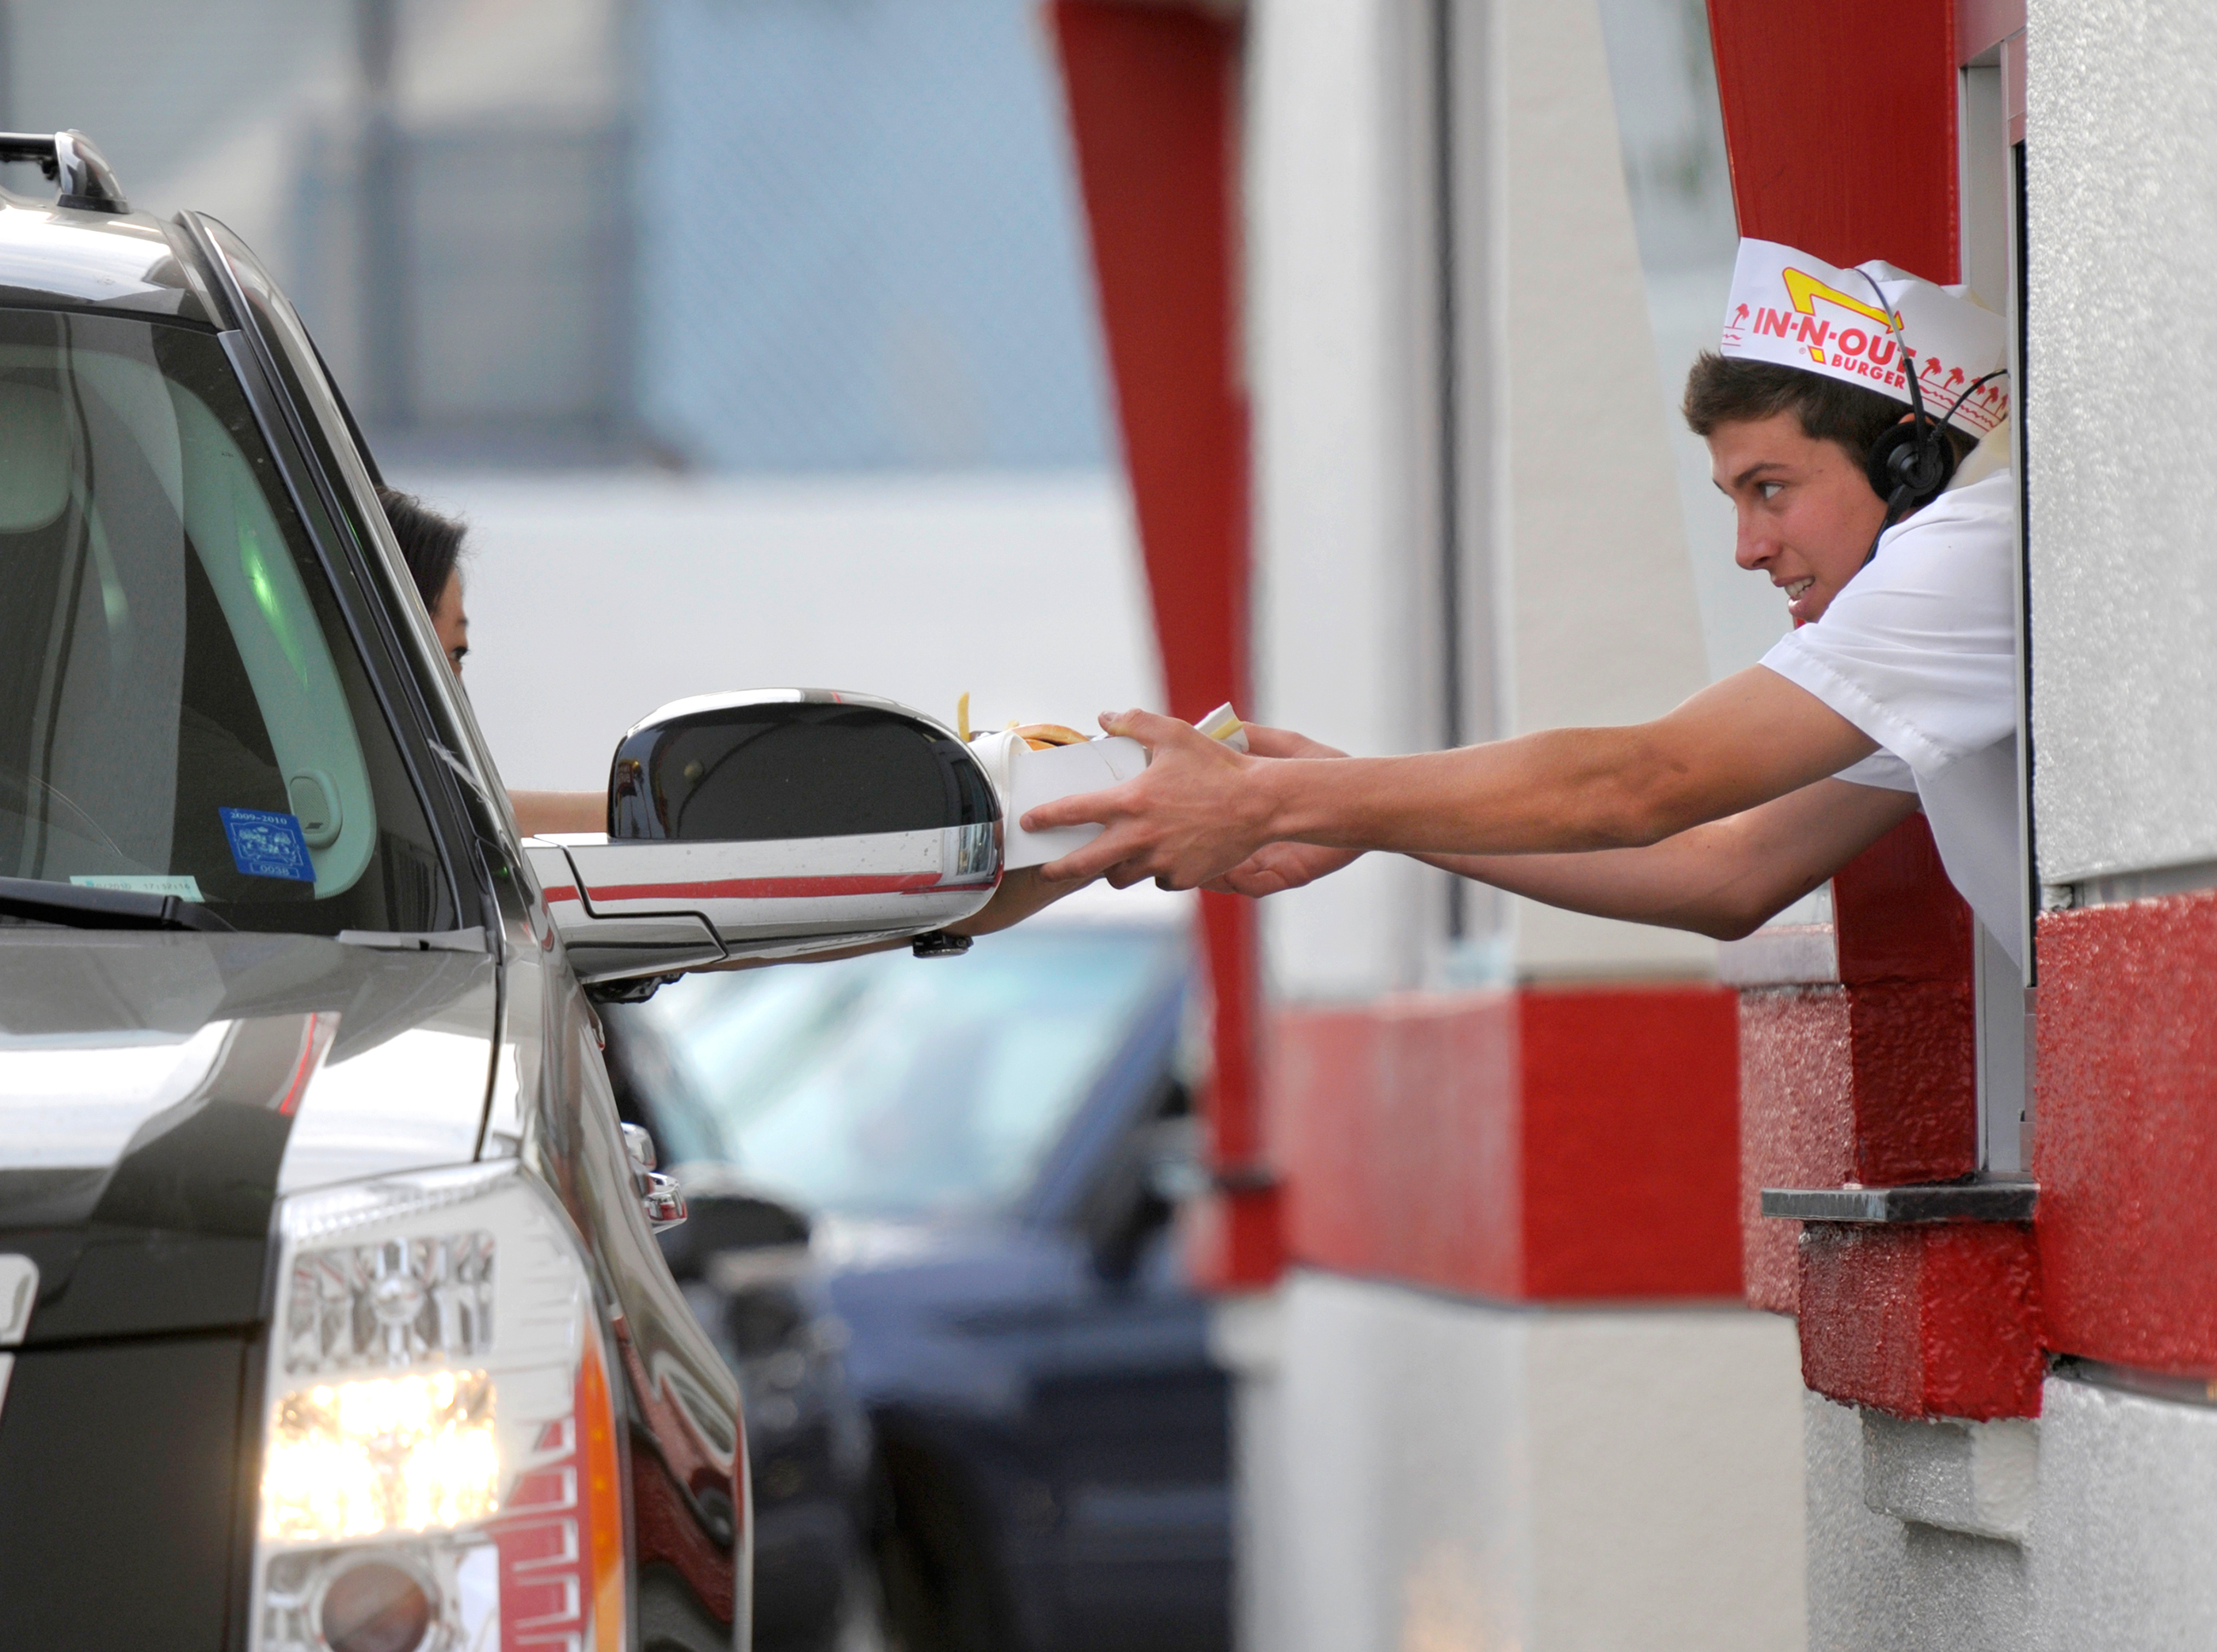 171009-employee-perks-in-n-out